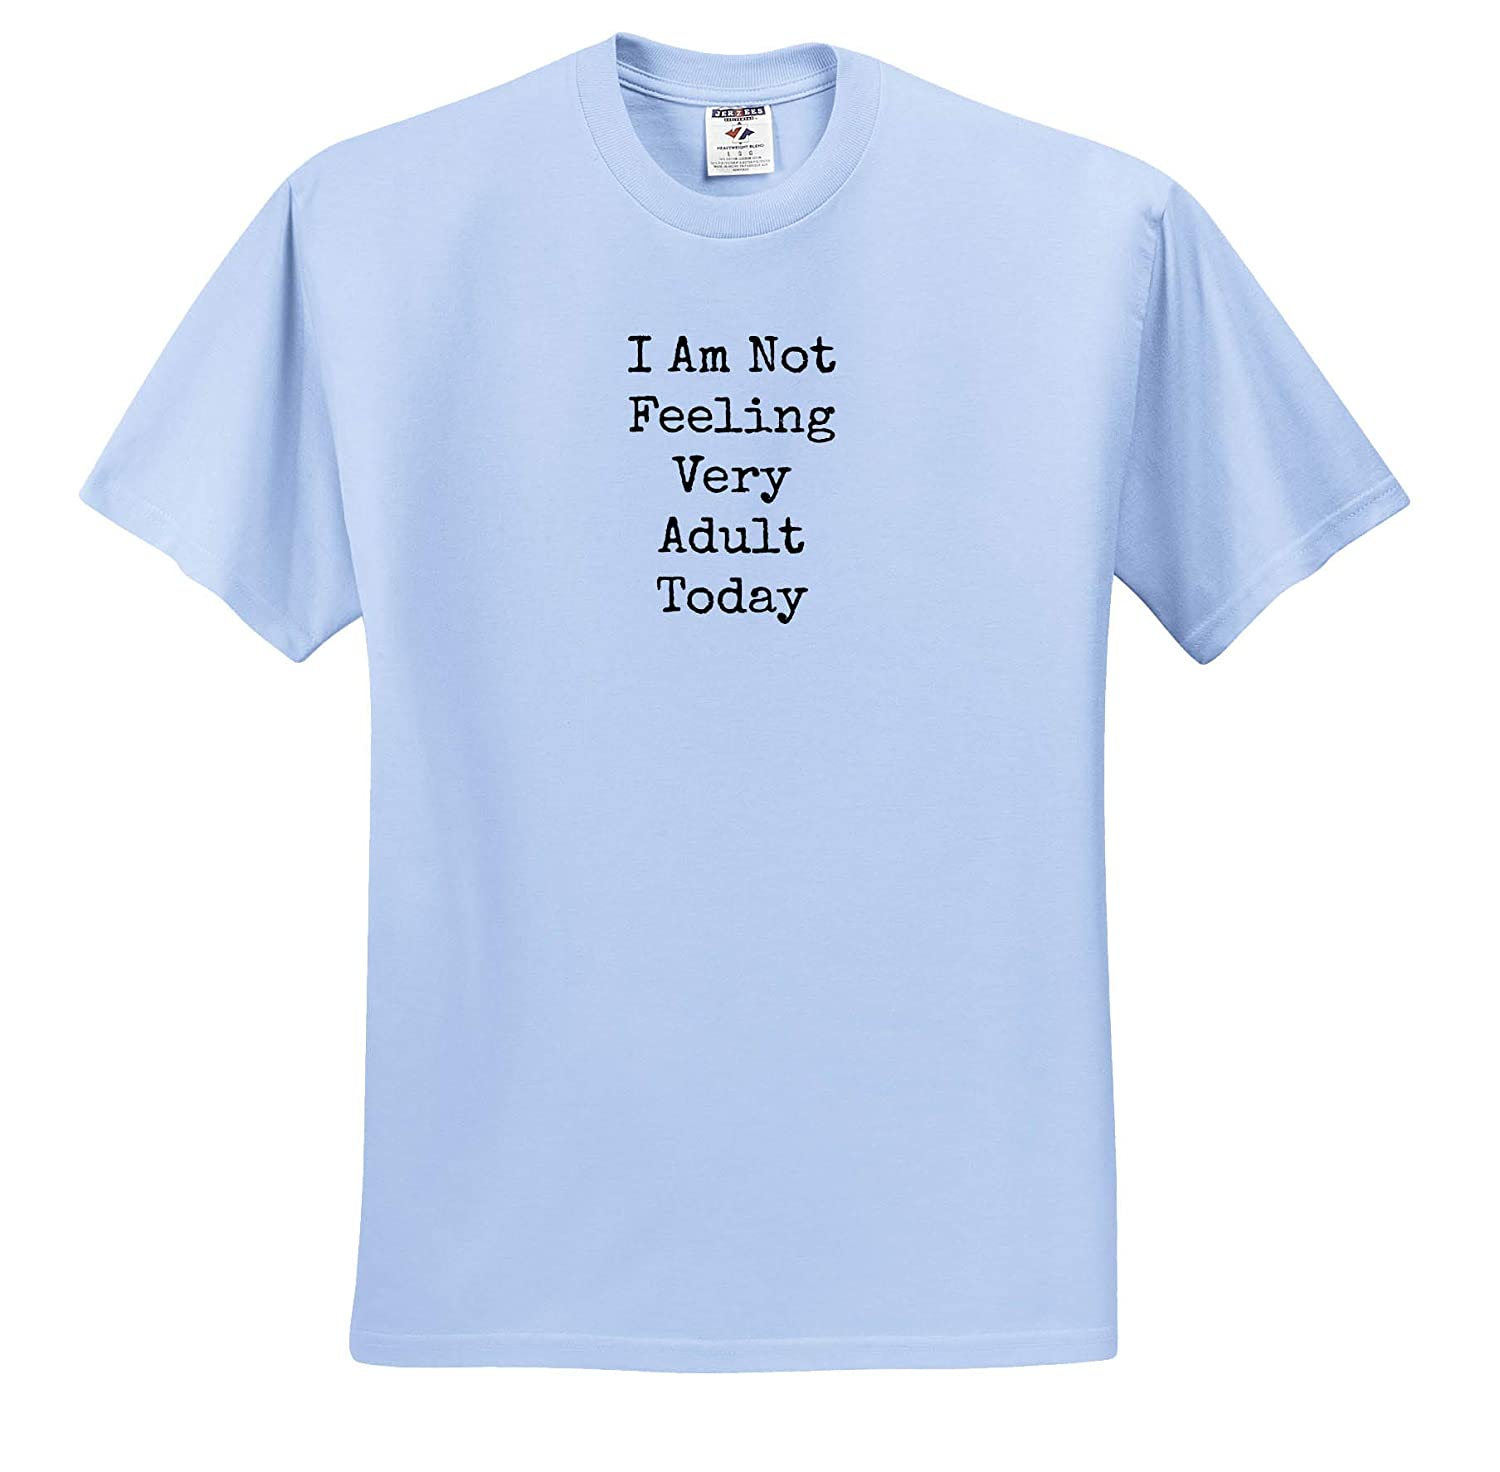 3dRose Carrie Merchant Quote Image of I Am Not Feeling Very Adult Today ts/_312302 Adult T-Shirt XL